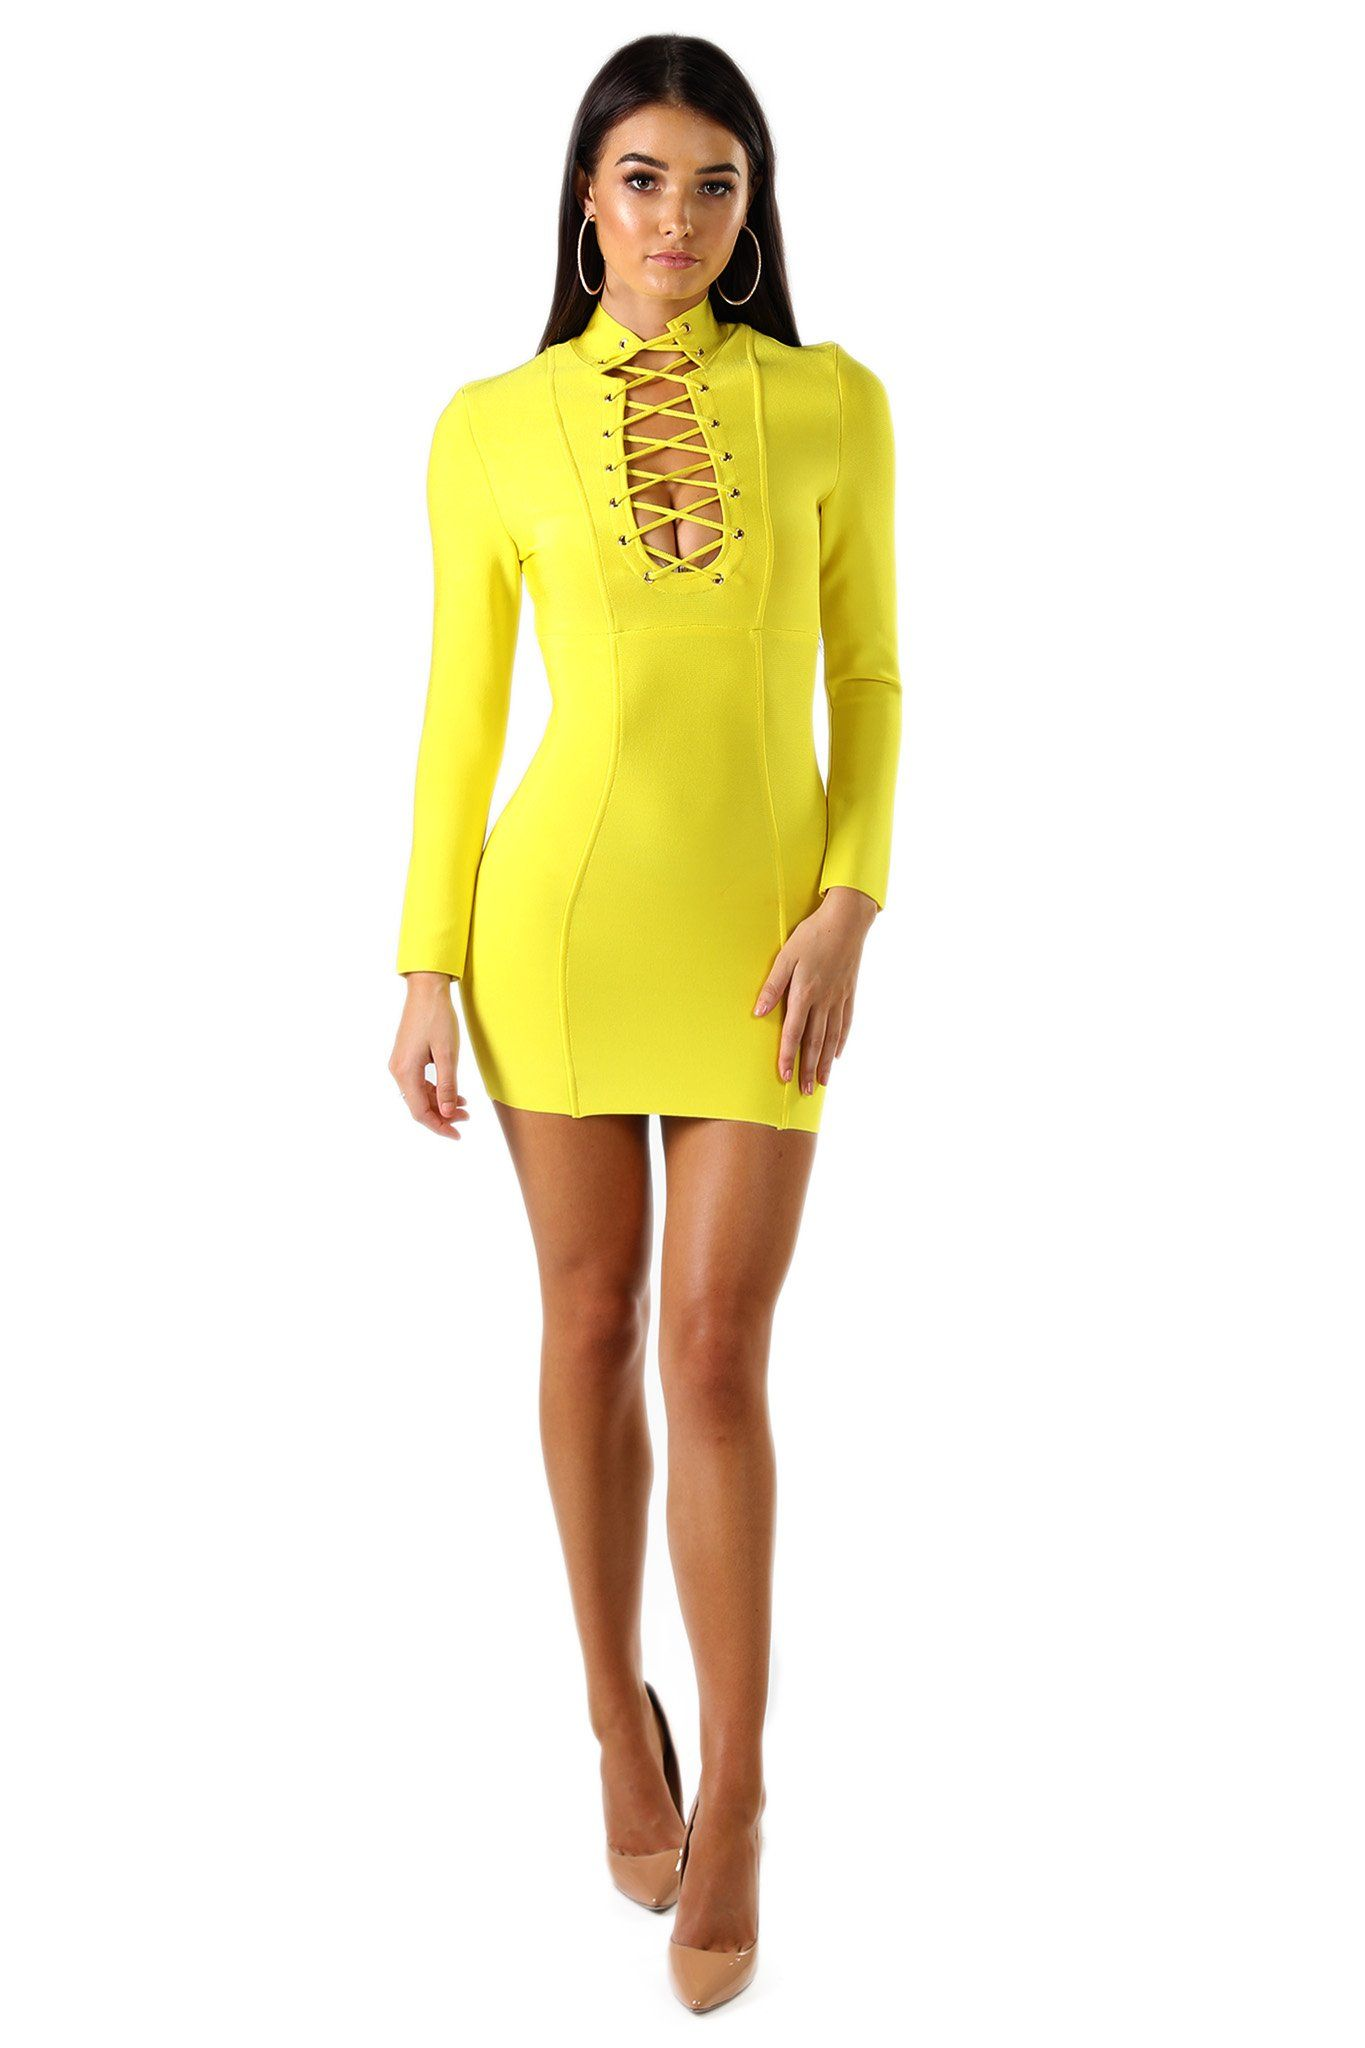 Yellow long sleeve mini tight fitted bandage dress with sexy front lace-up closure on the keyhole and high neck design